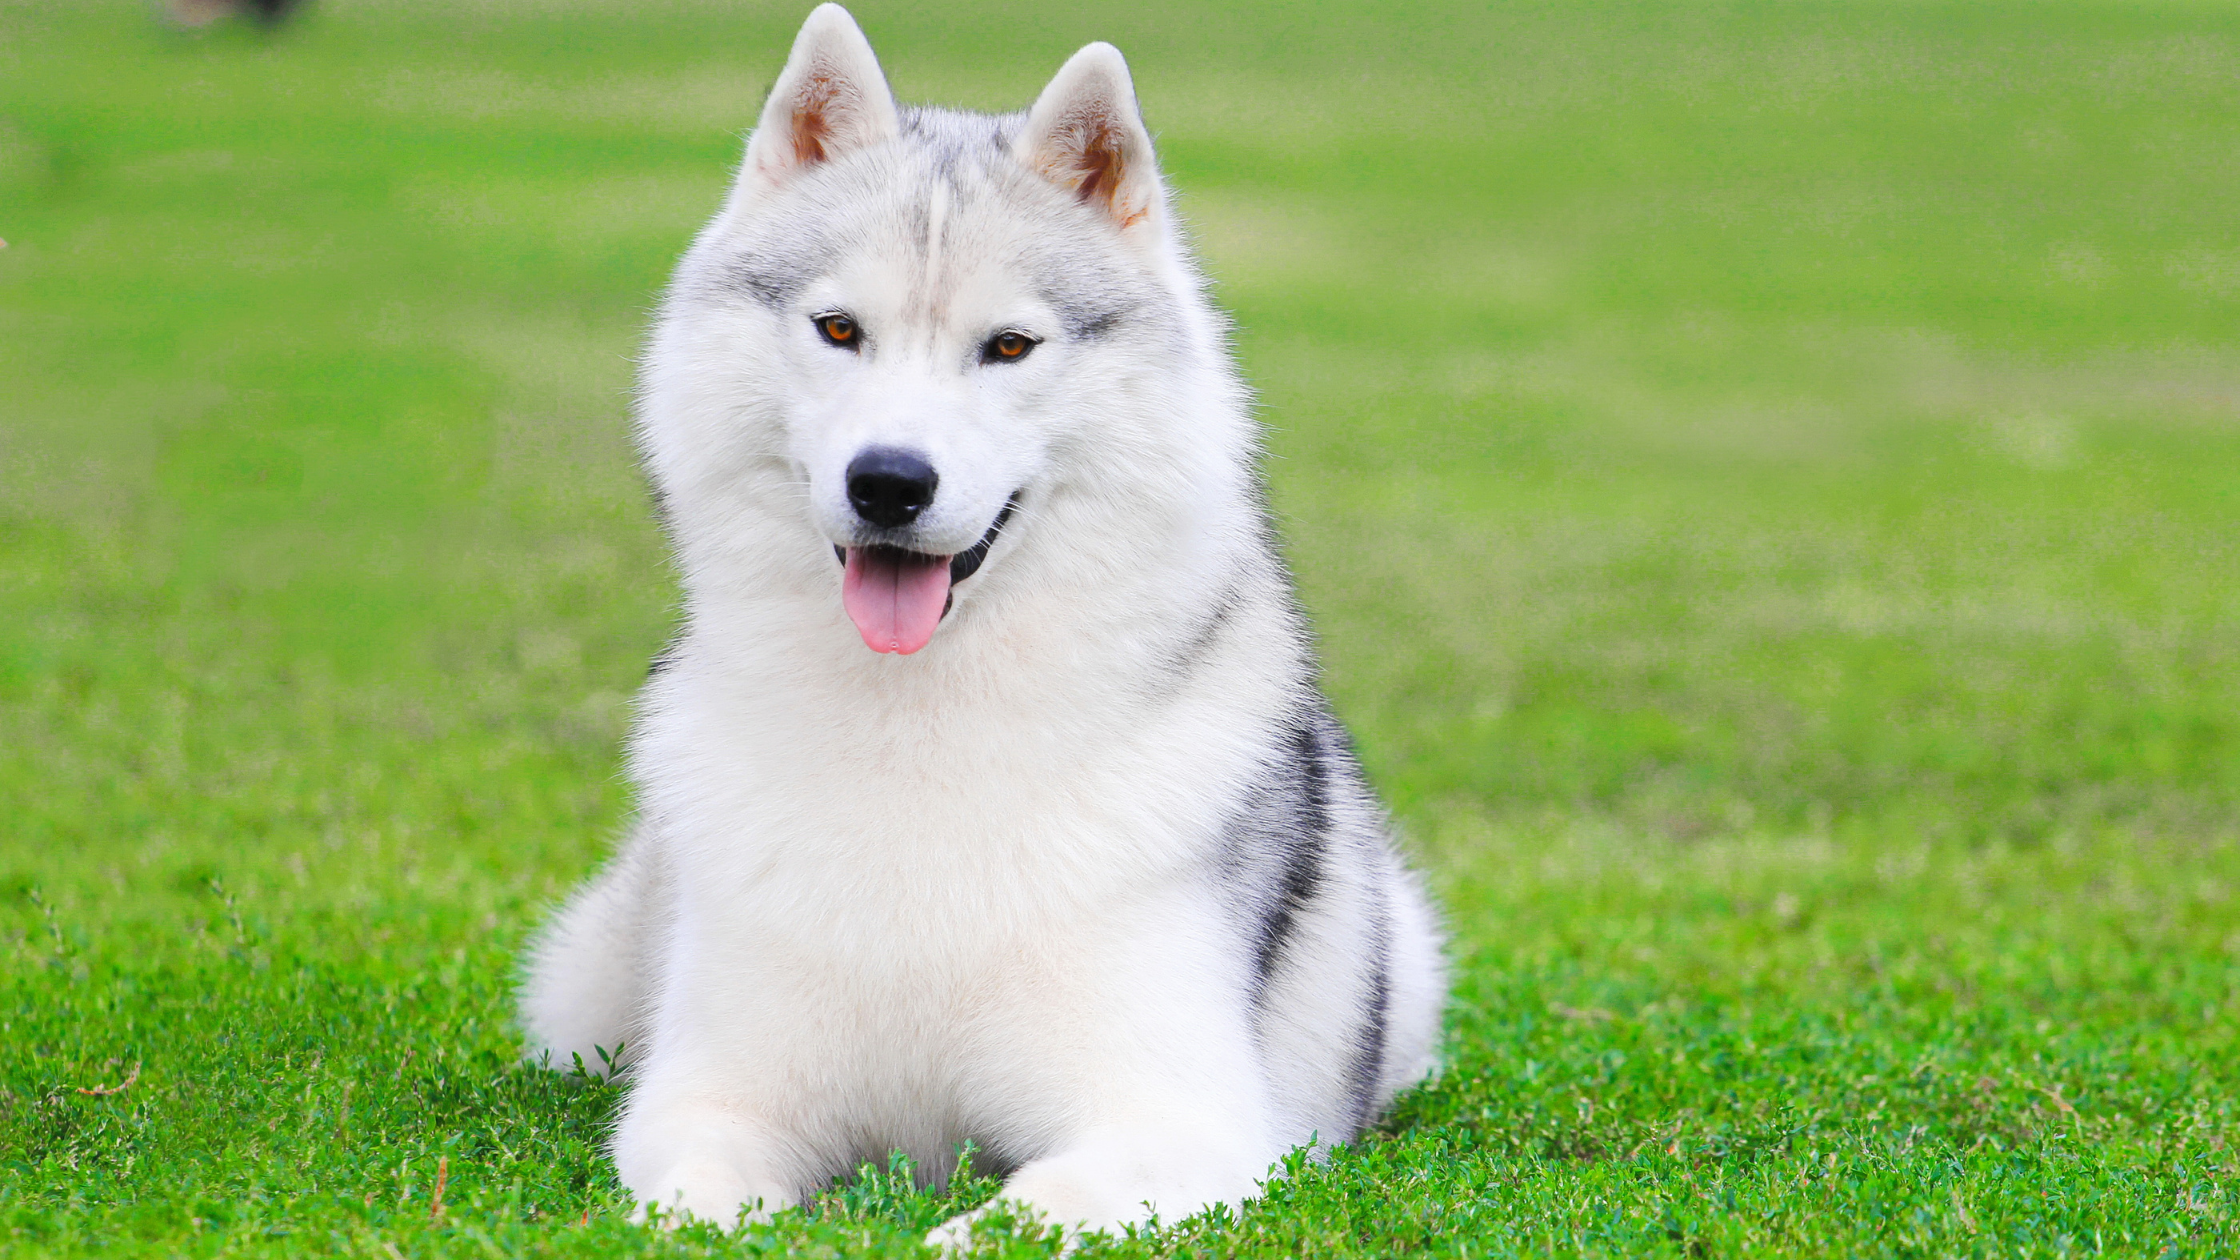 Fluffy white husky with brown eyes laying on the green grass with a smile on his face.